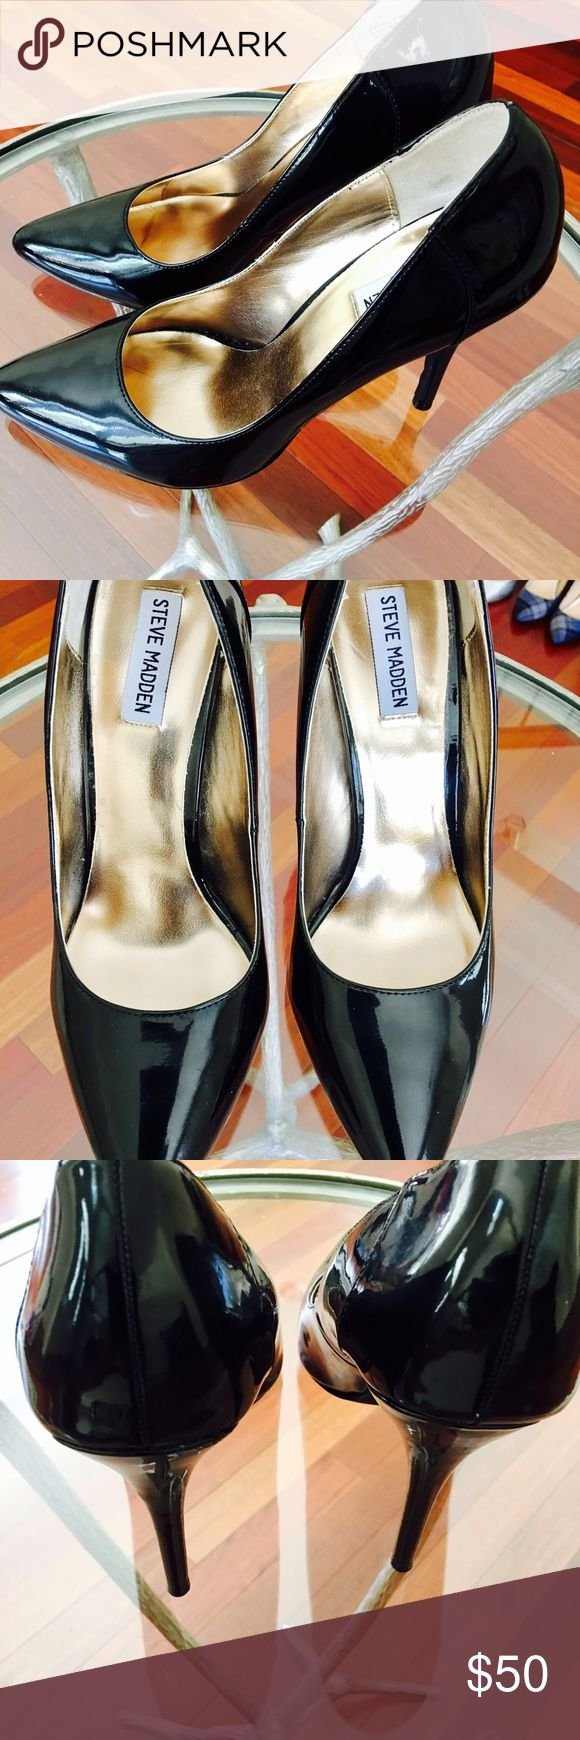 17 Best Ideas About Black Patent Leather On Pinterest